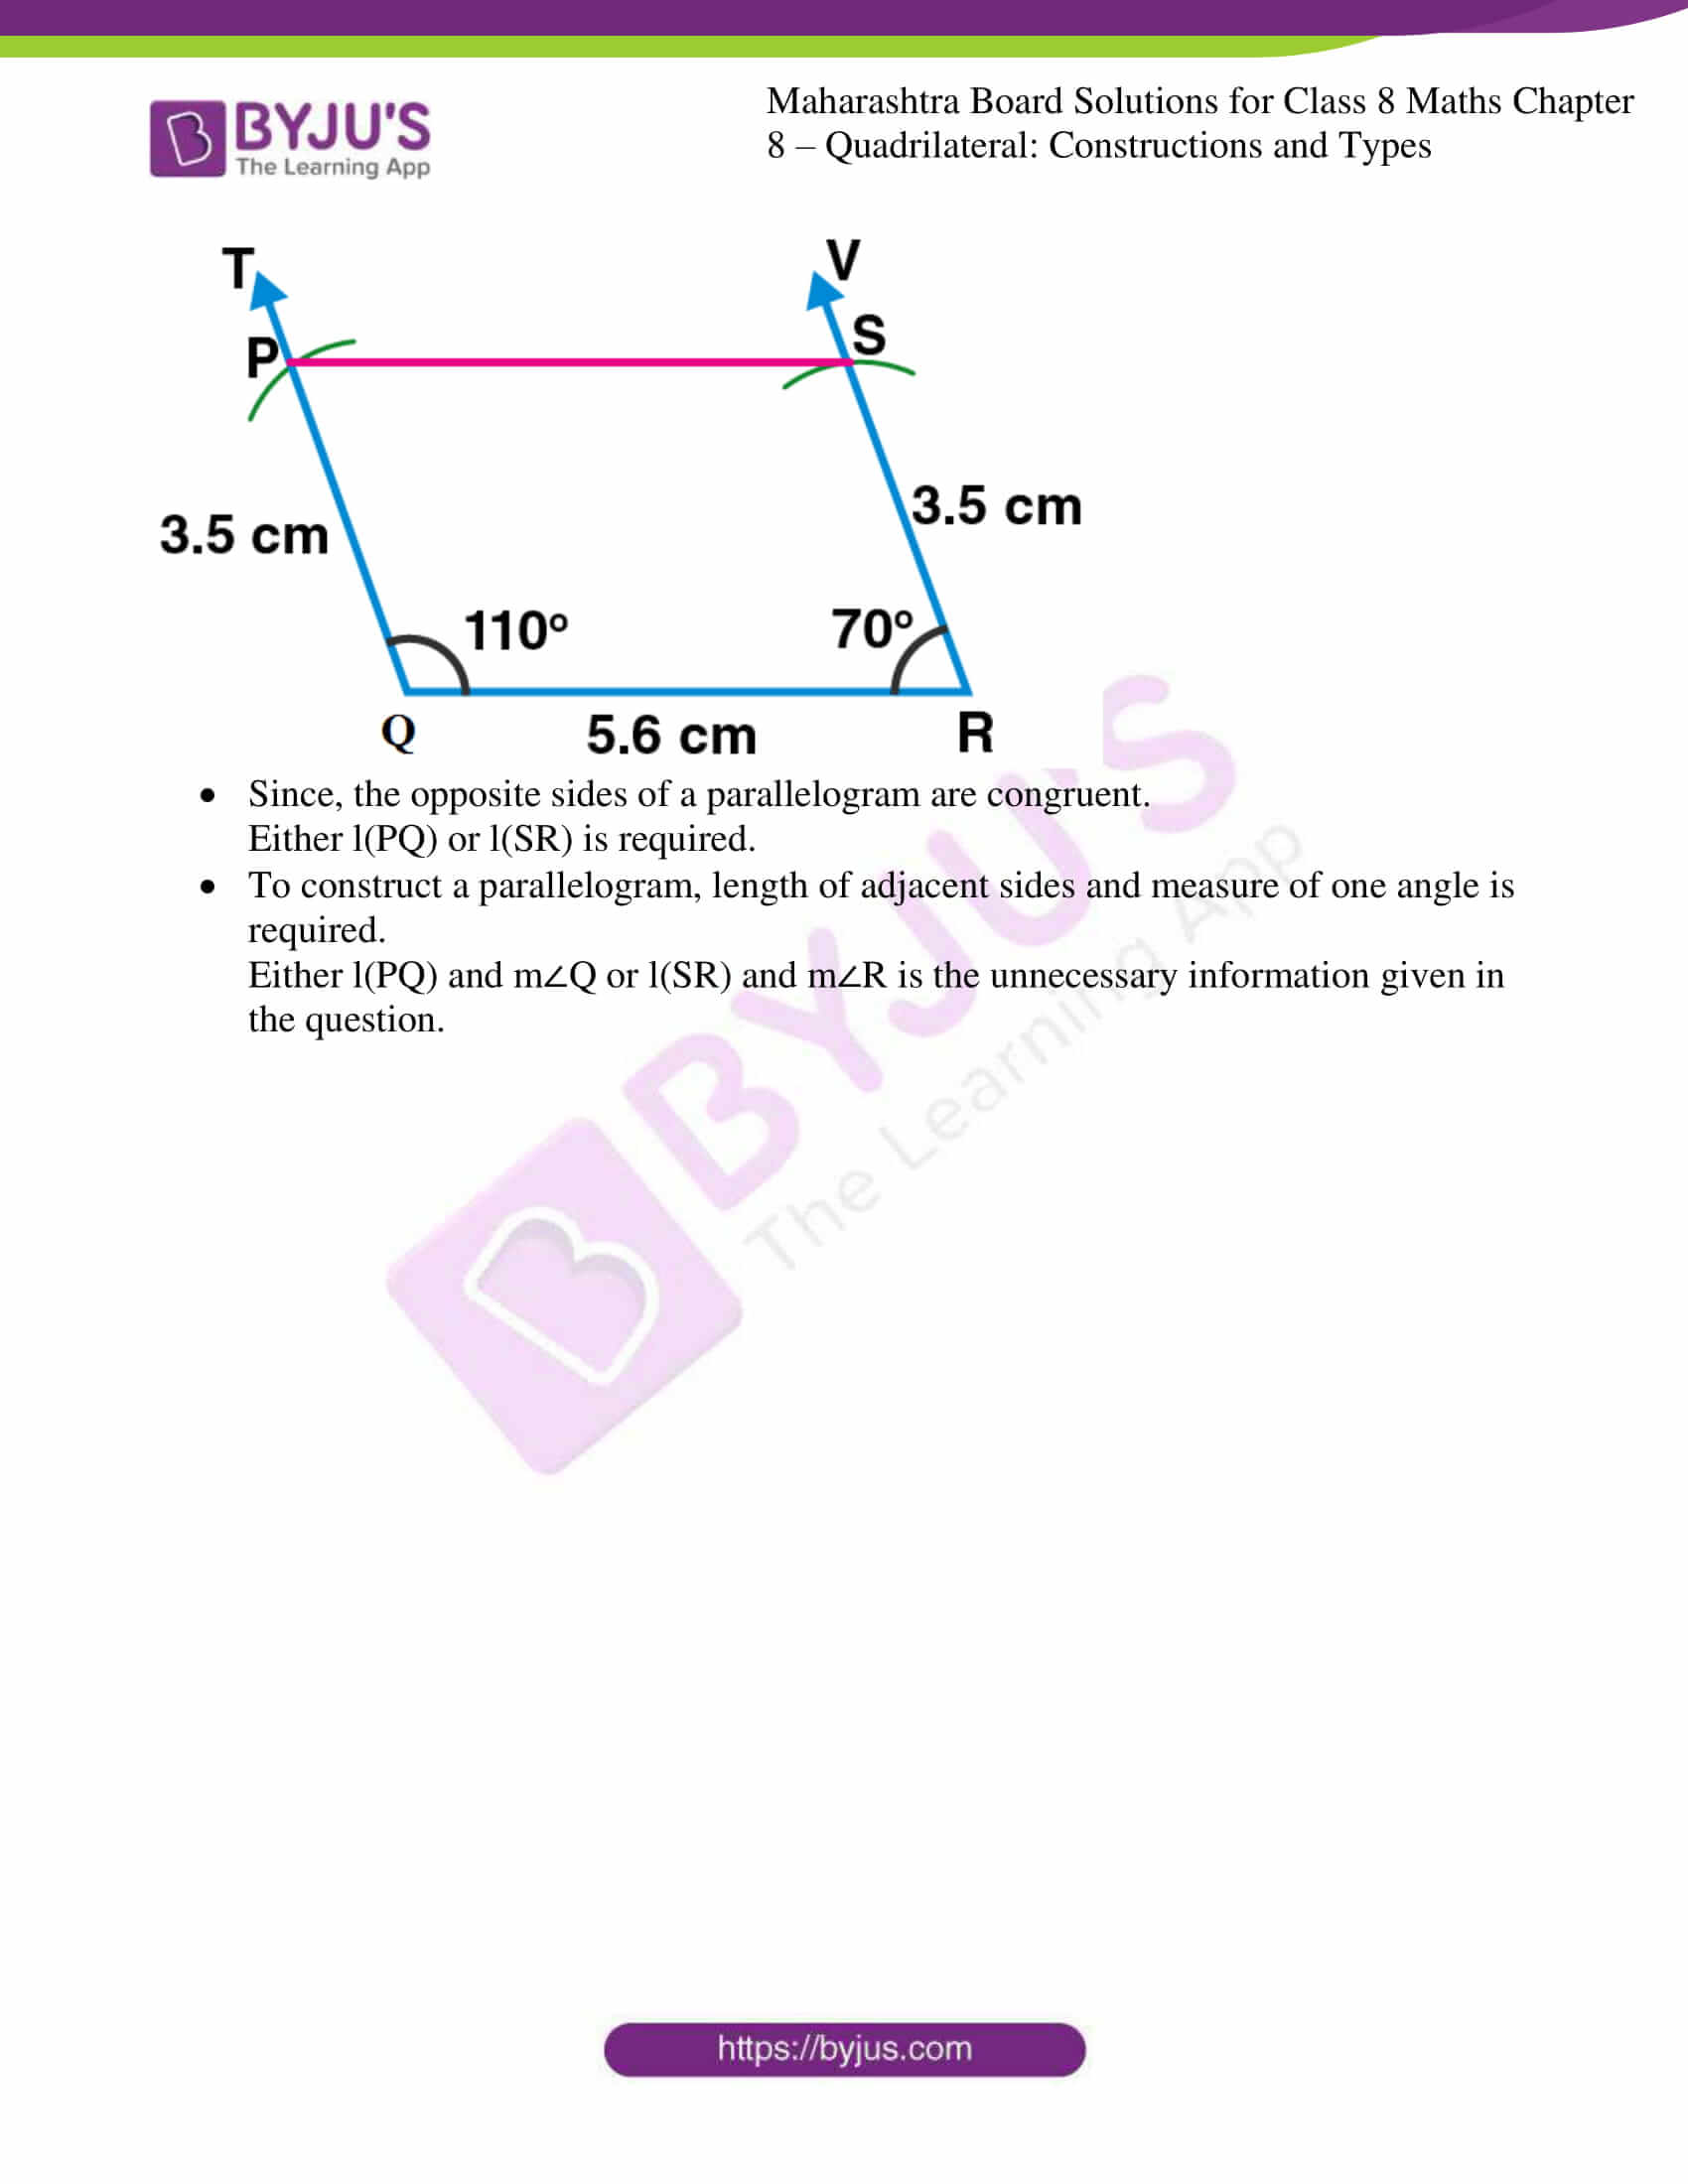 msbshse sol for class 8 maths chapter 8 18